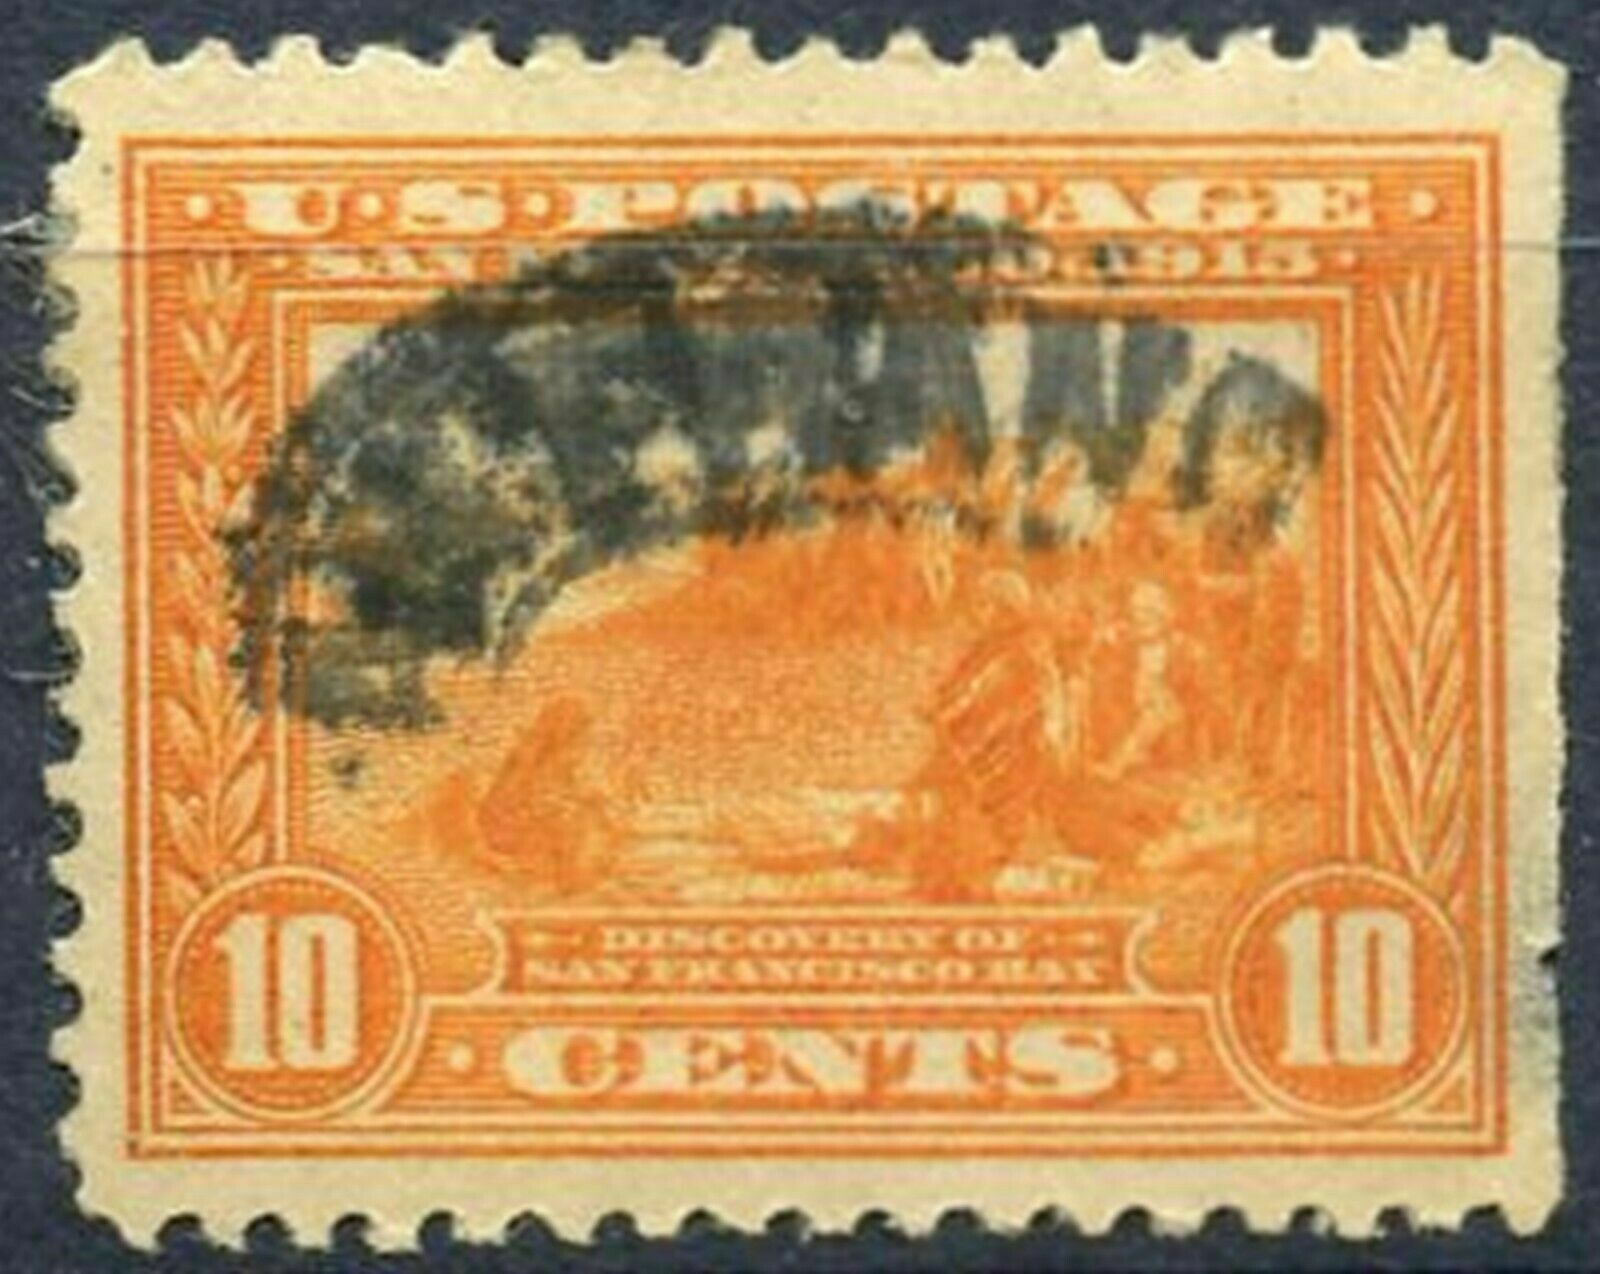 SCOTT # 400a  - USED TEN CENT PANAMA-PACIFIC STAMP  -  EXCELLENT CONDITION